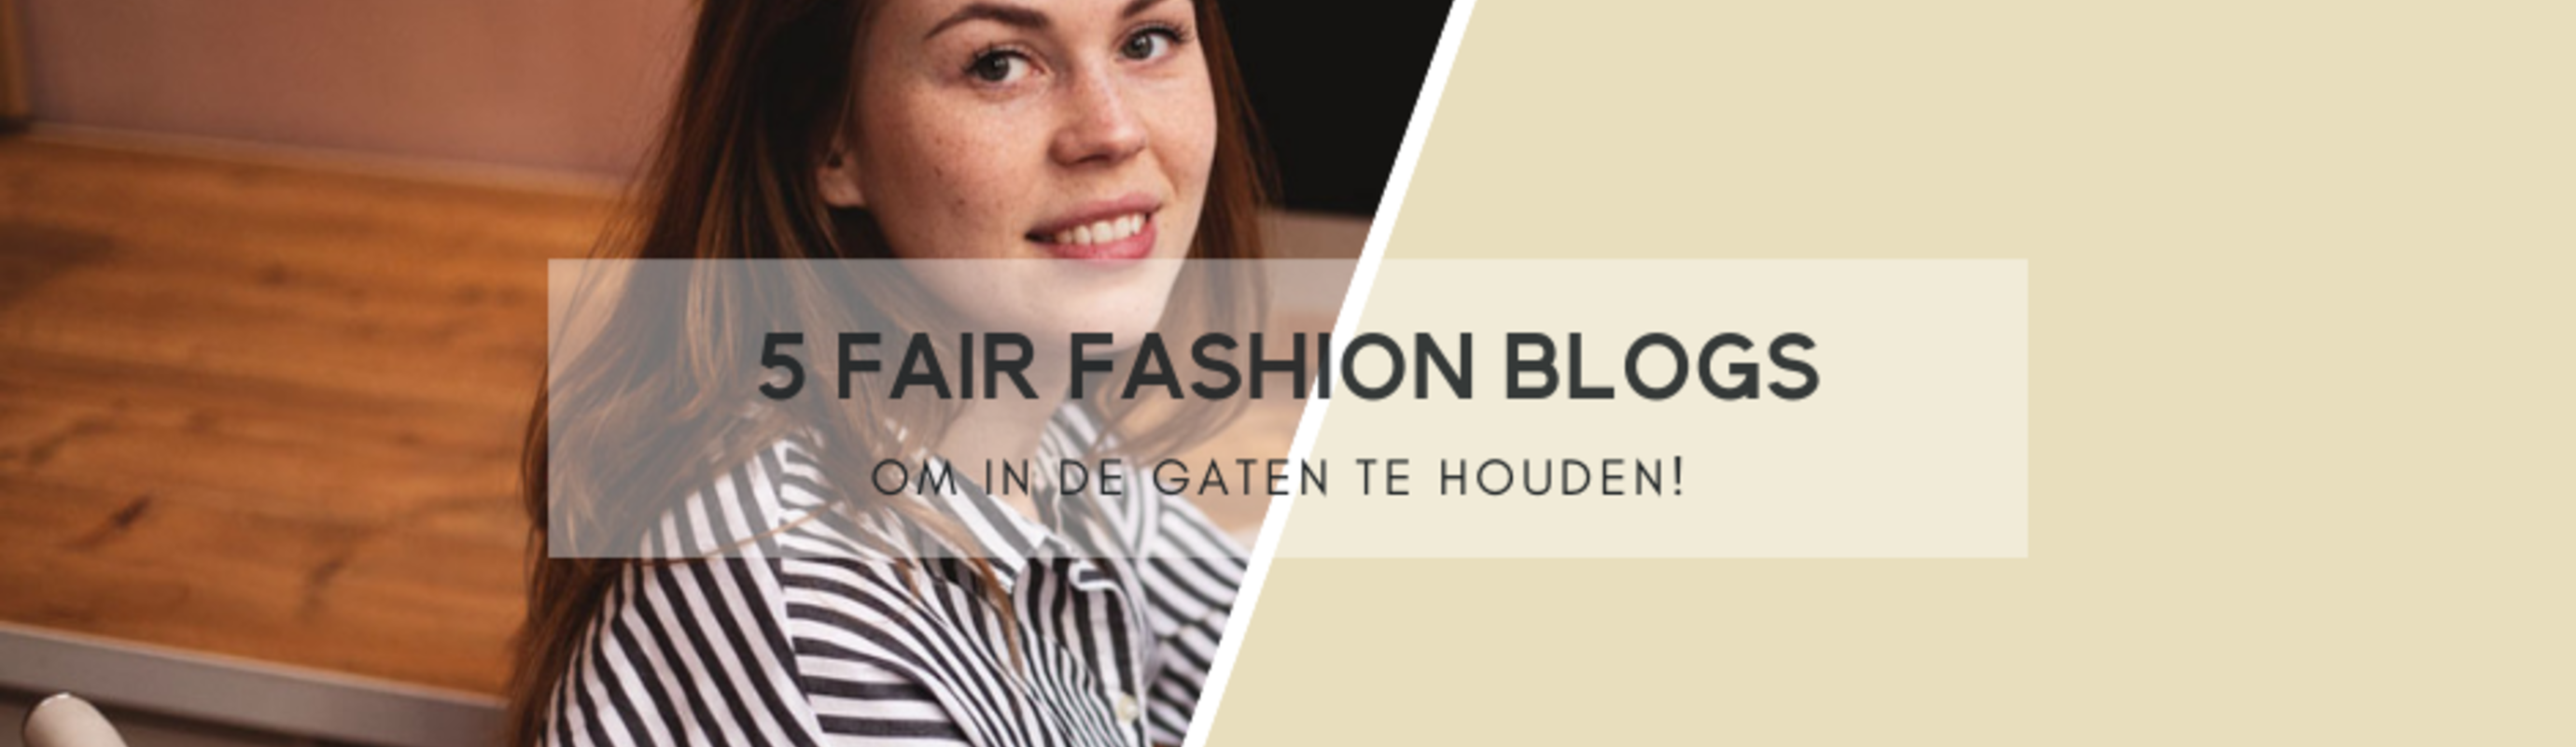 5 Fair Fashion Blogs om in de gaten te houden!